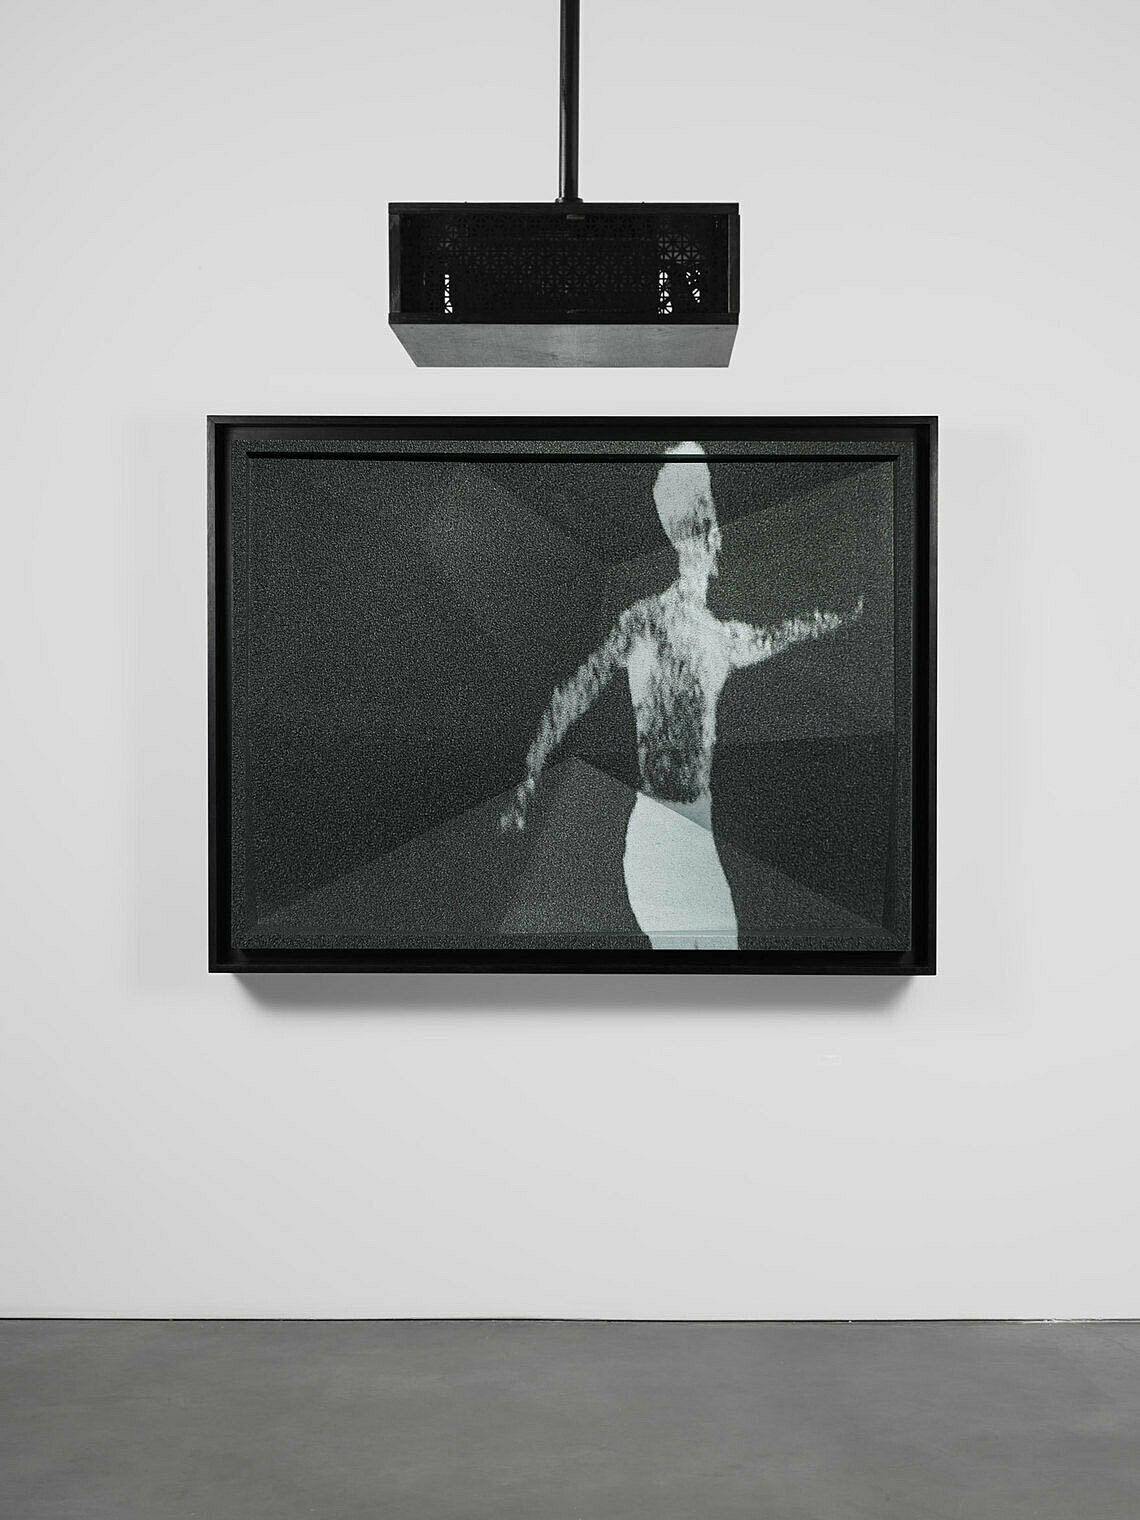 An installation view of a work by Josiah McElheny. A video projection depicts a blurry figure in black and white tones